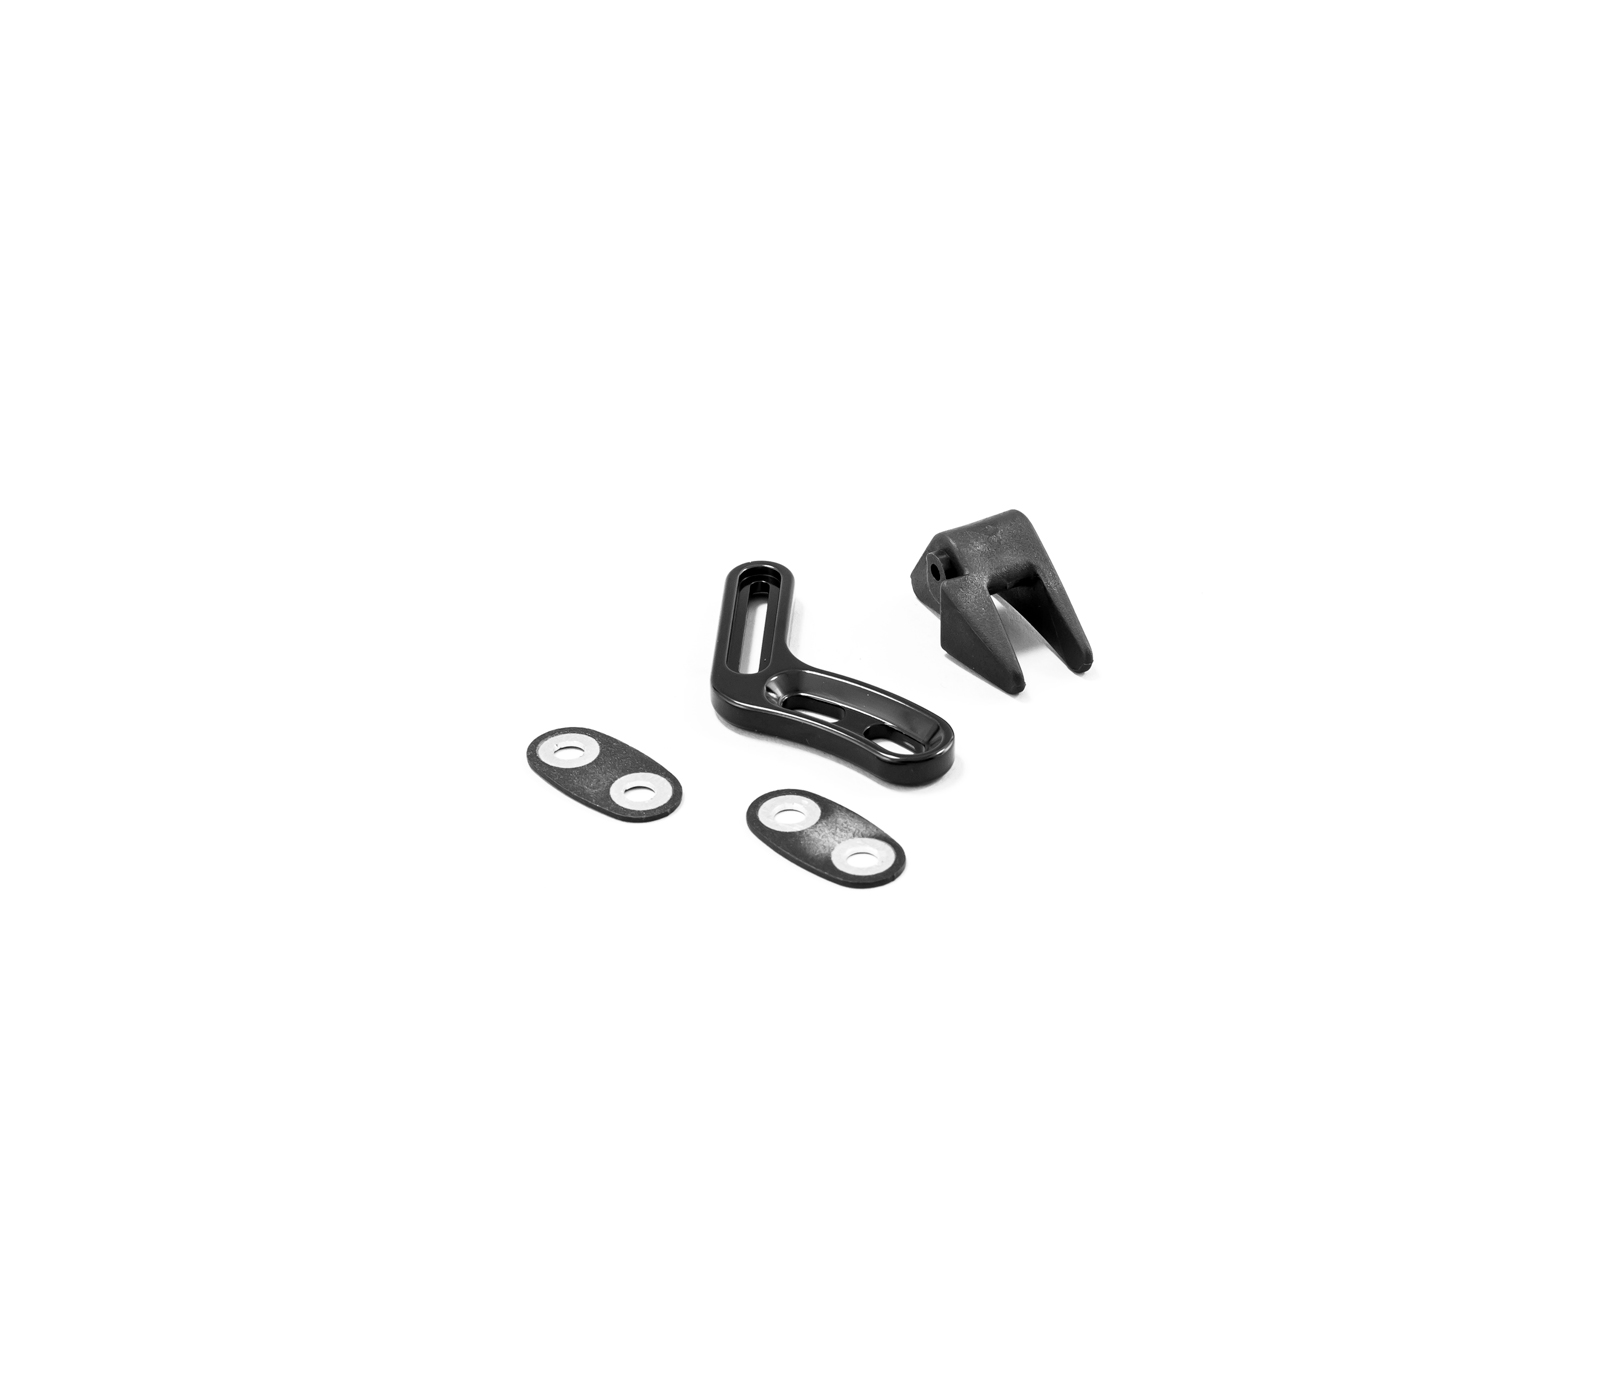 ALMA 17 SHIMANO CHAIN GUIDE KIT